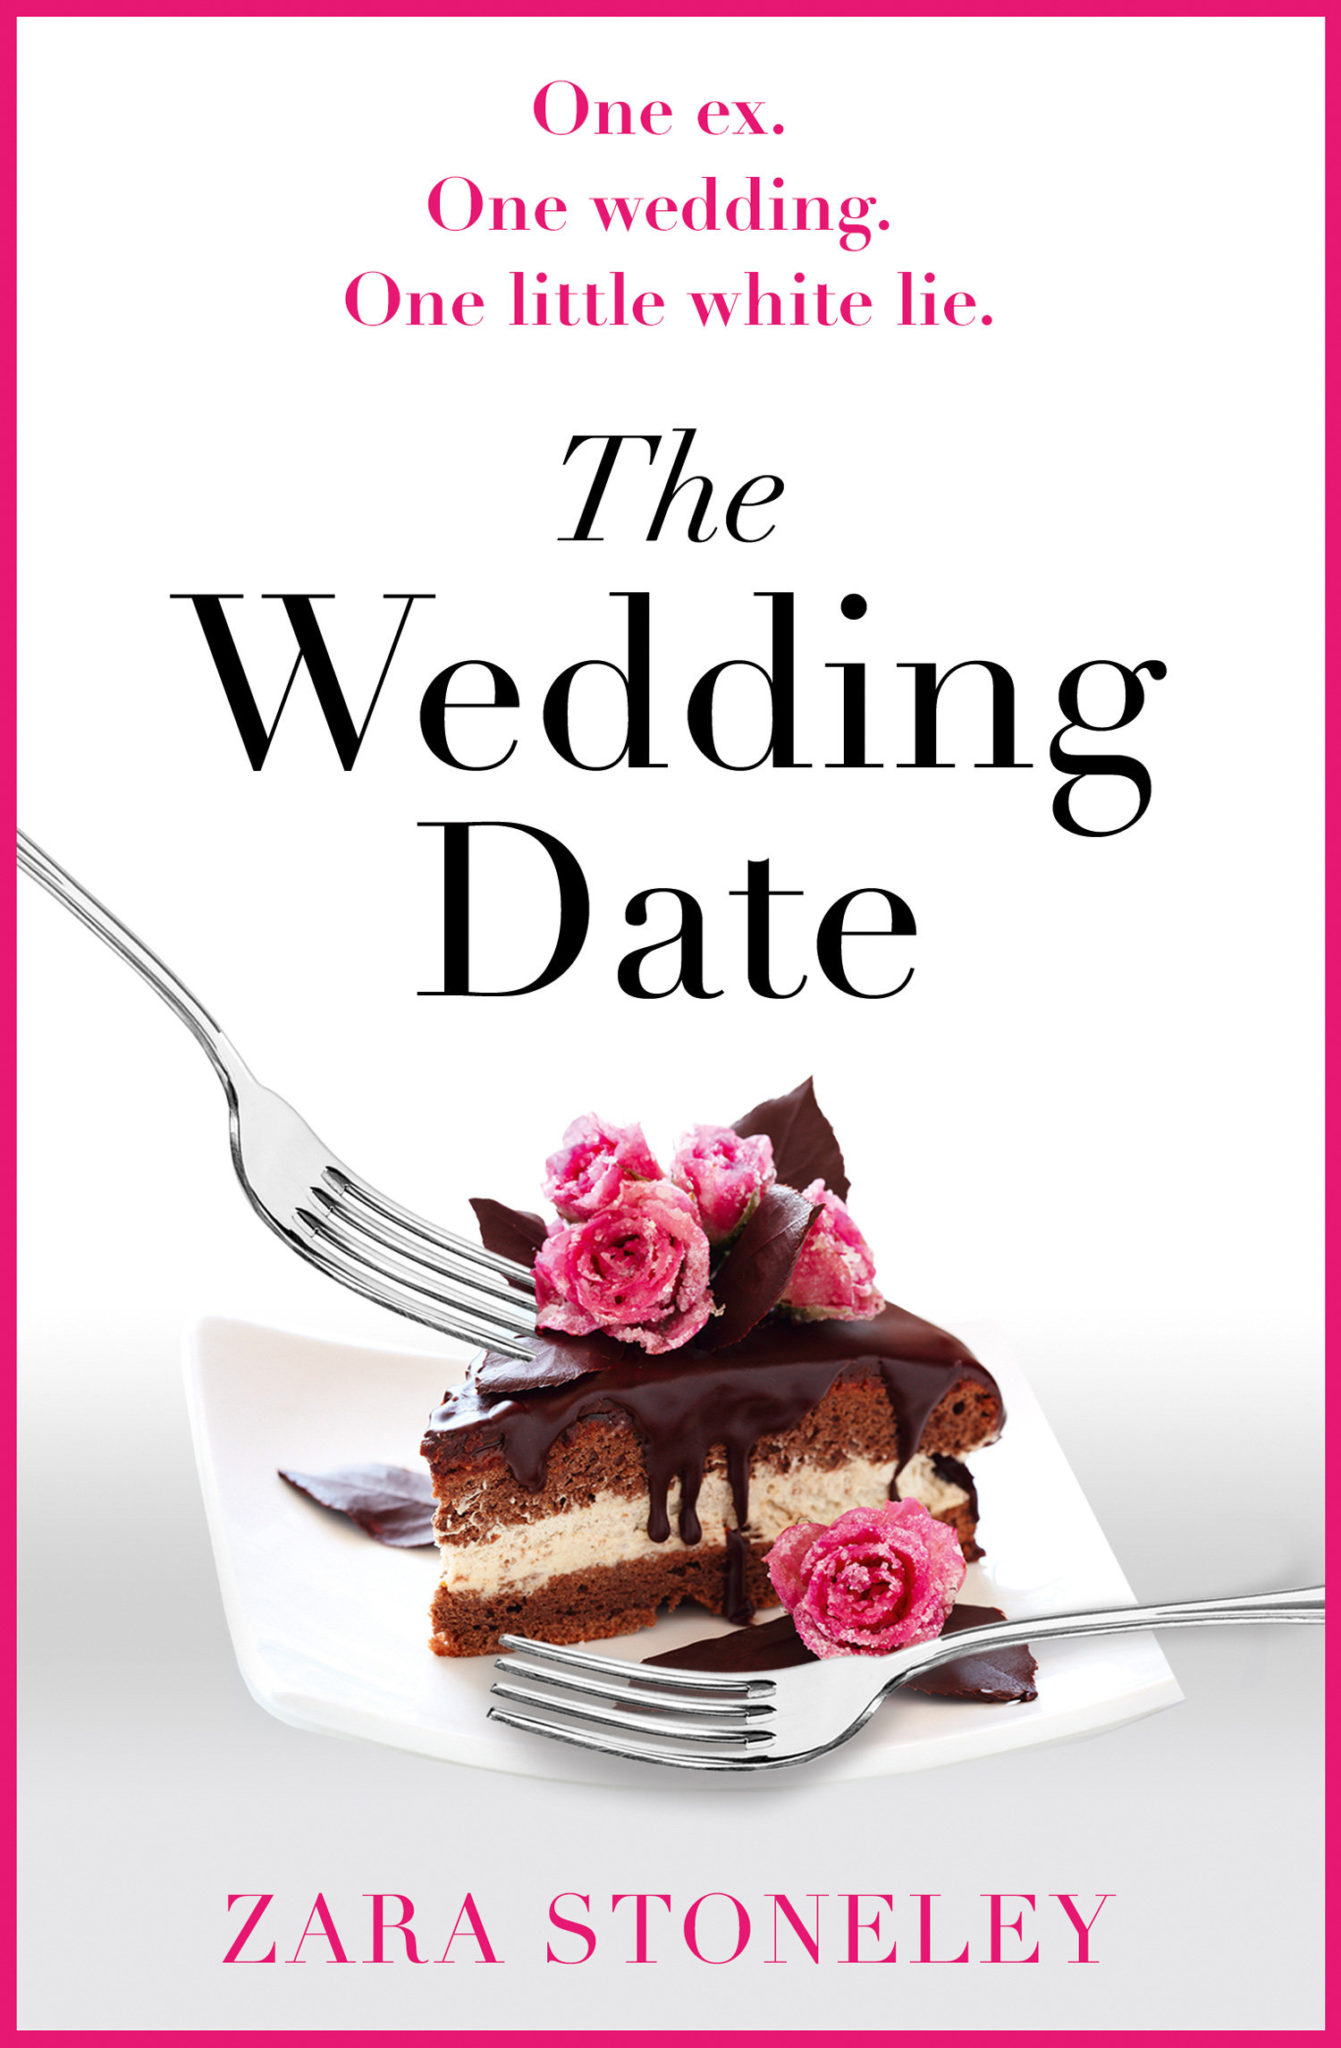 The Wedding Date by Zara Stoneley